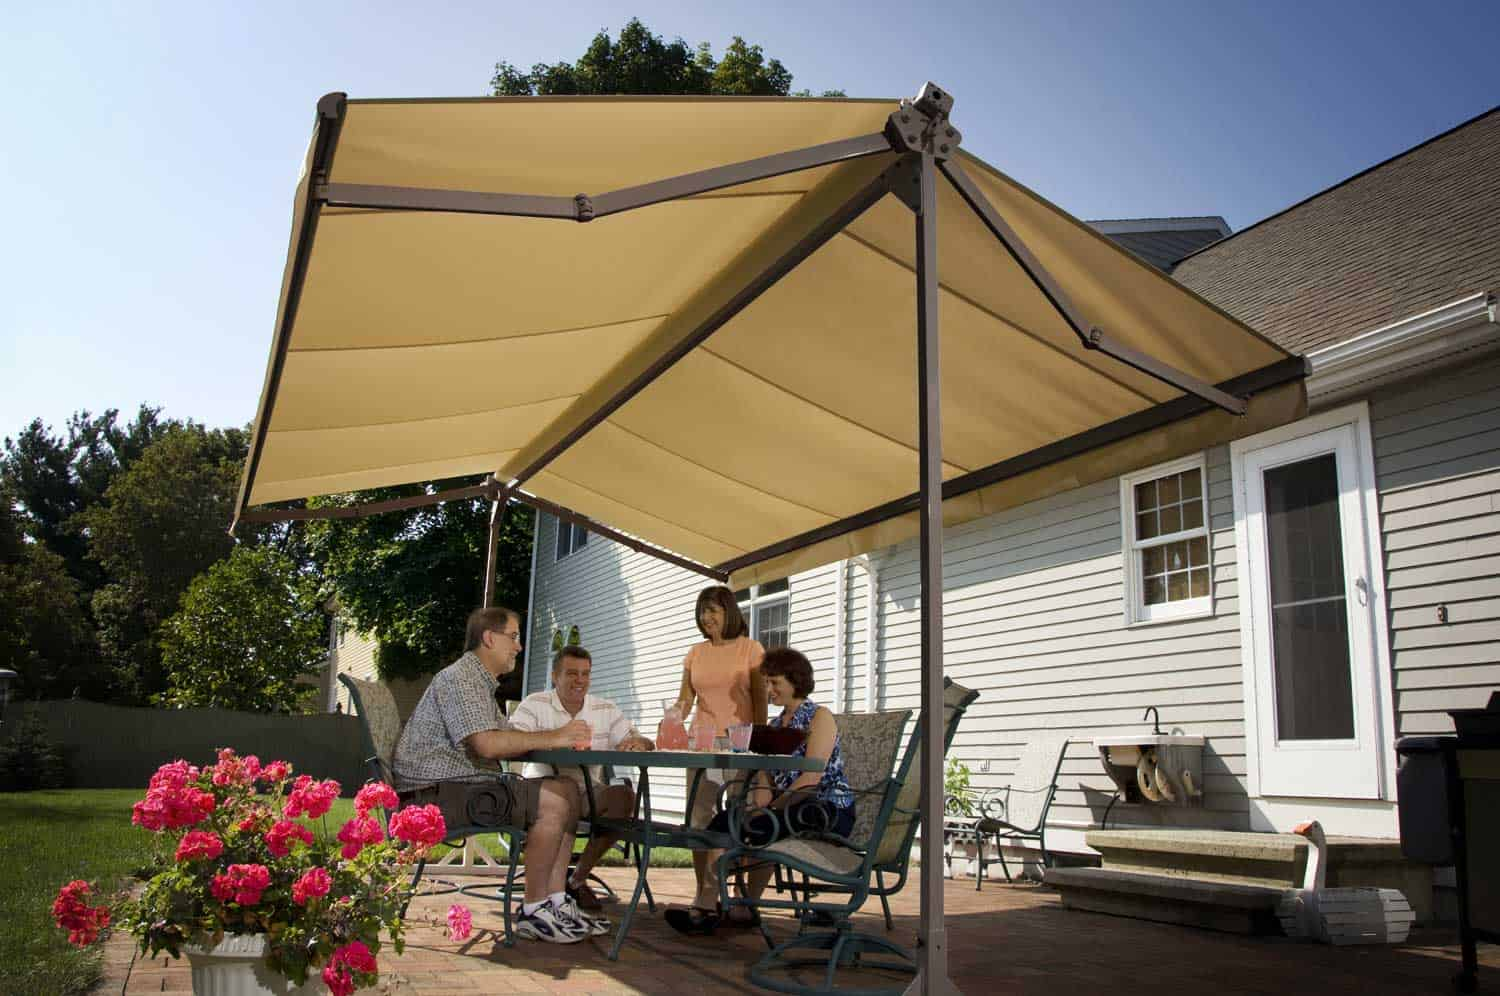 Retractable Awnings Denver - Best Awning Company